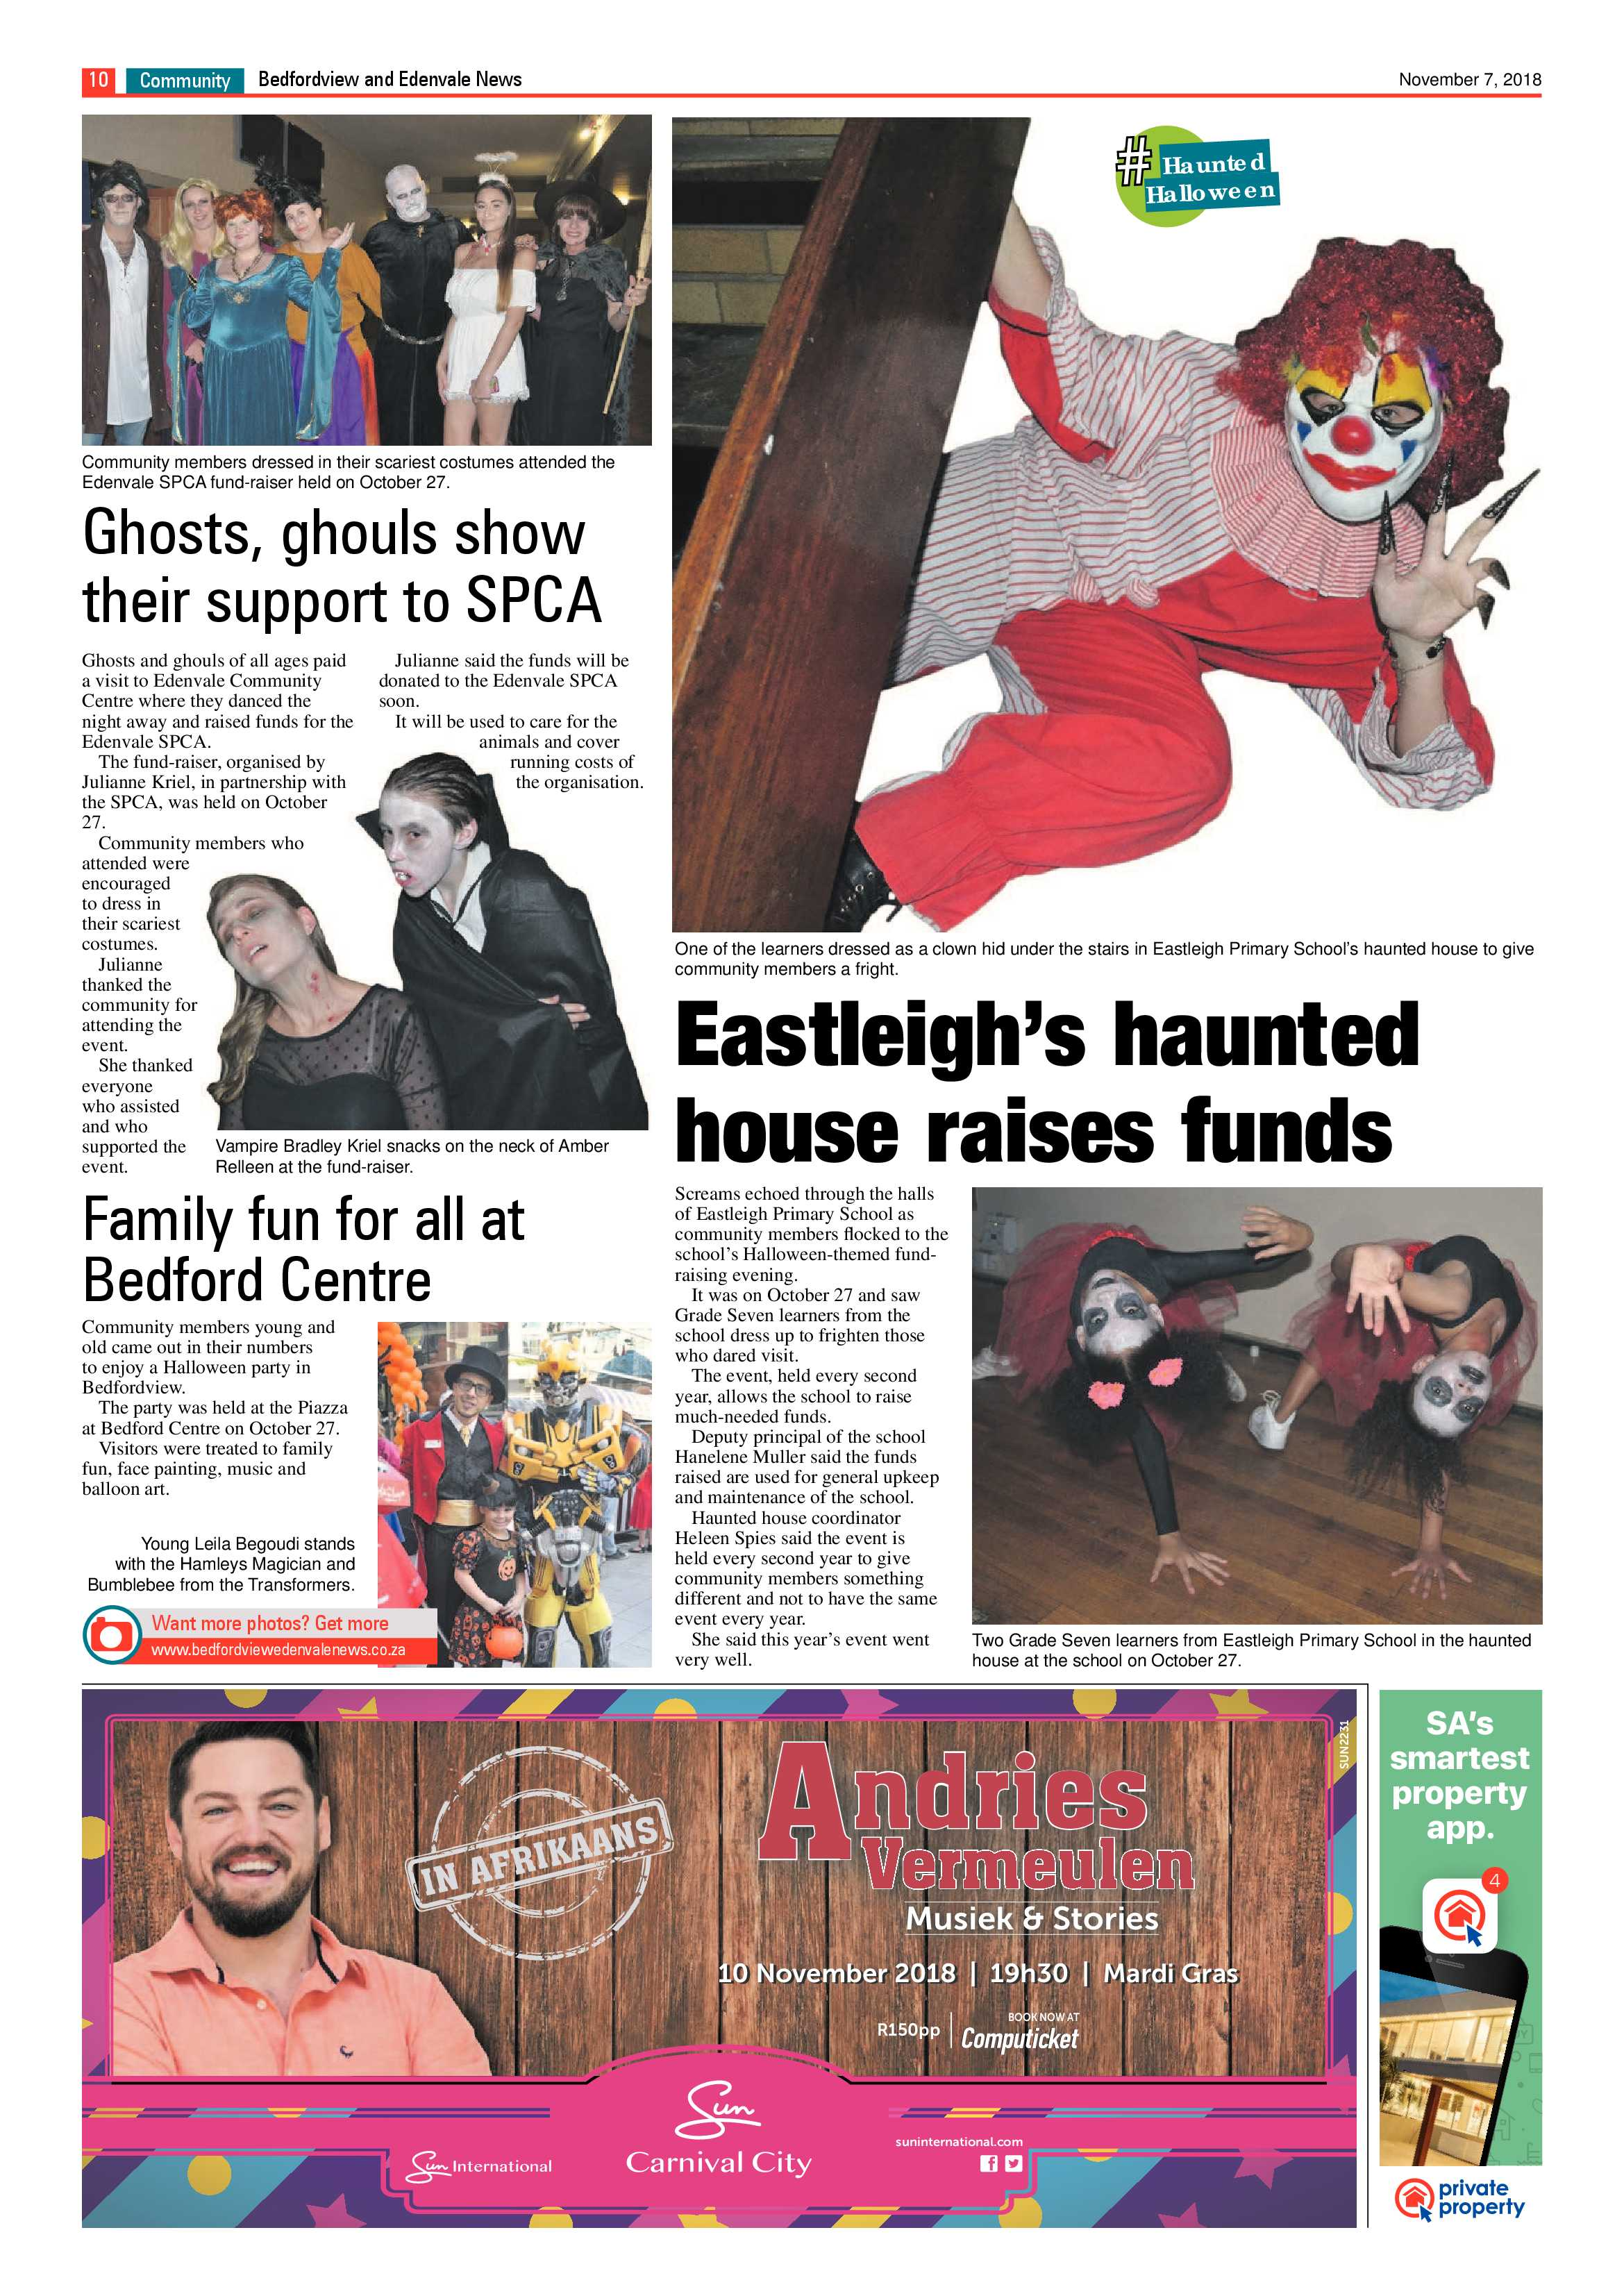 bedfordview-edenvale-news-07-november-2018-epapers-page-10